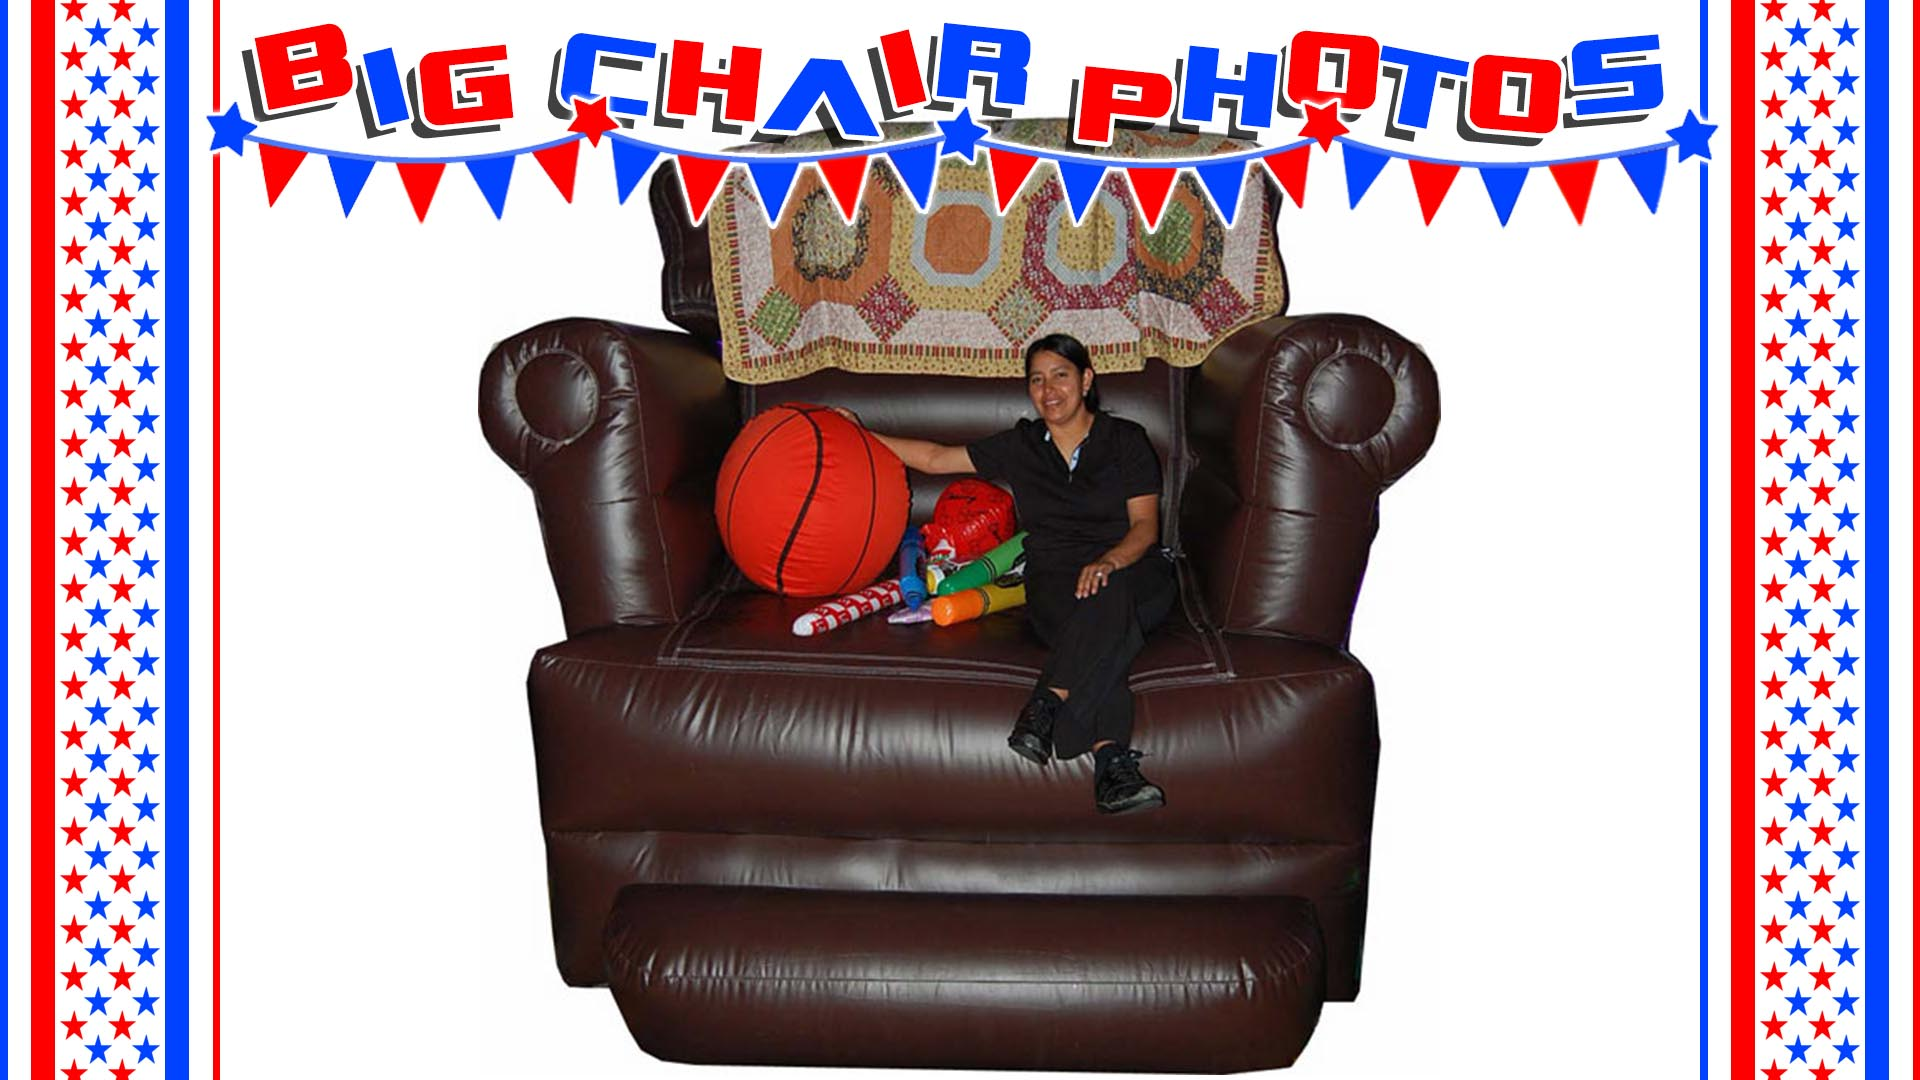 big chair carnival photos